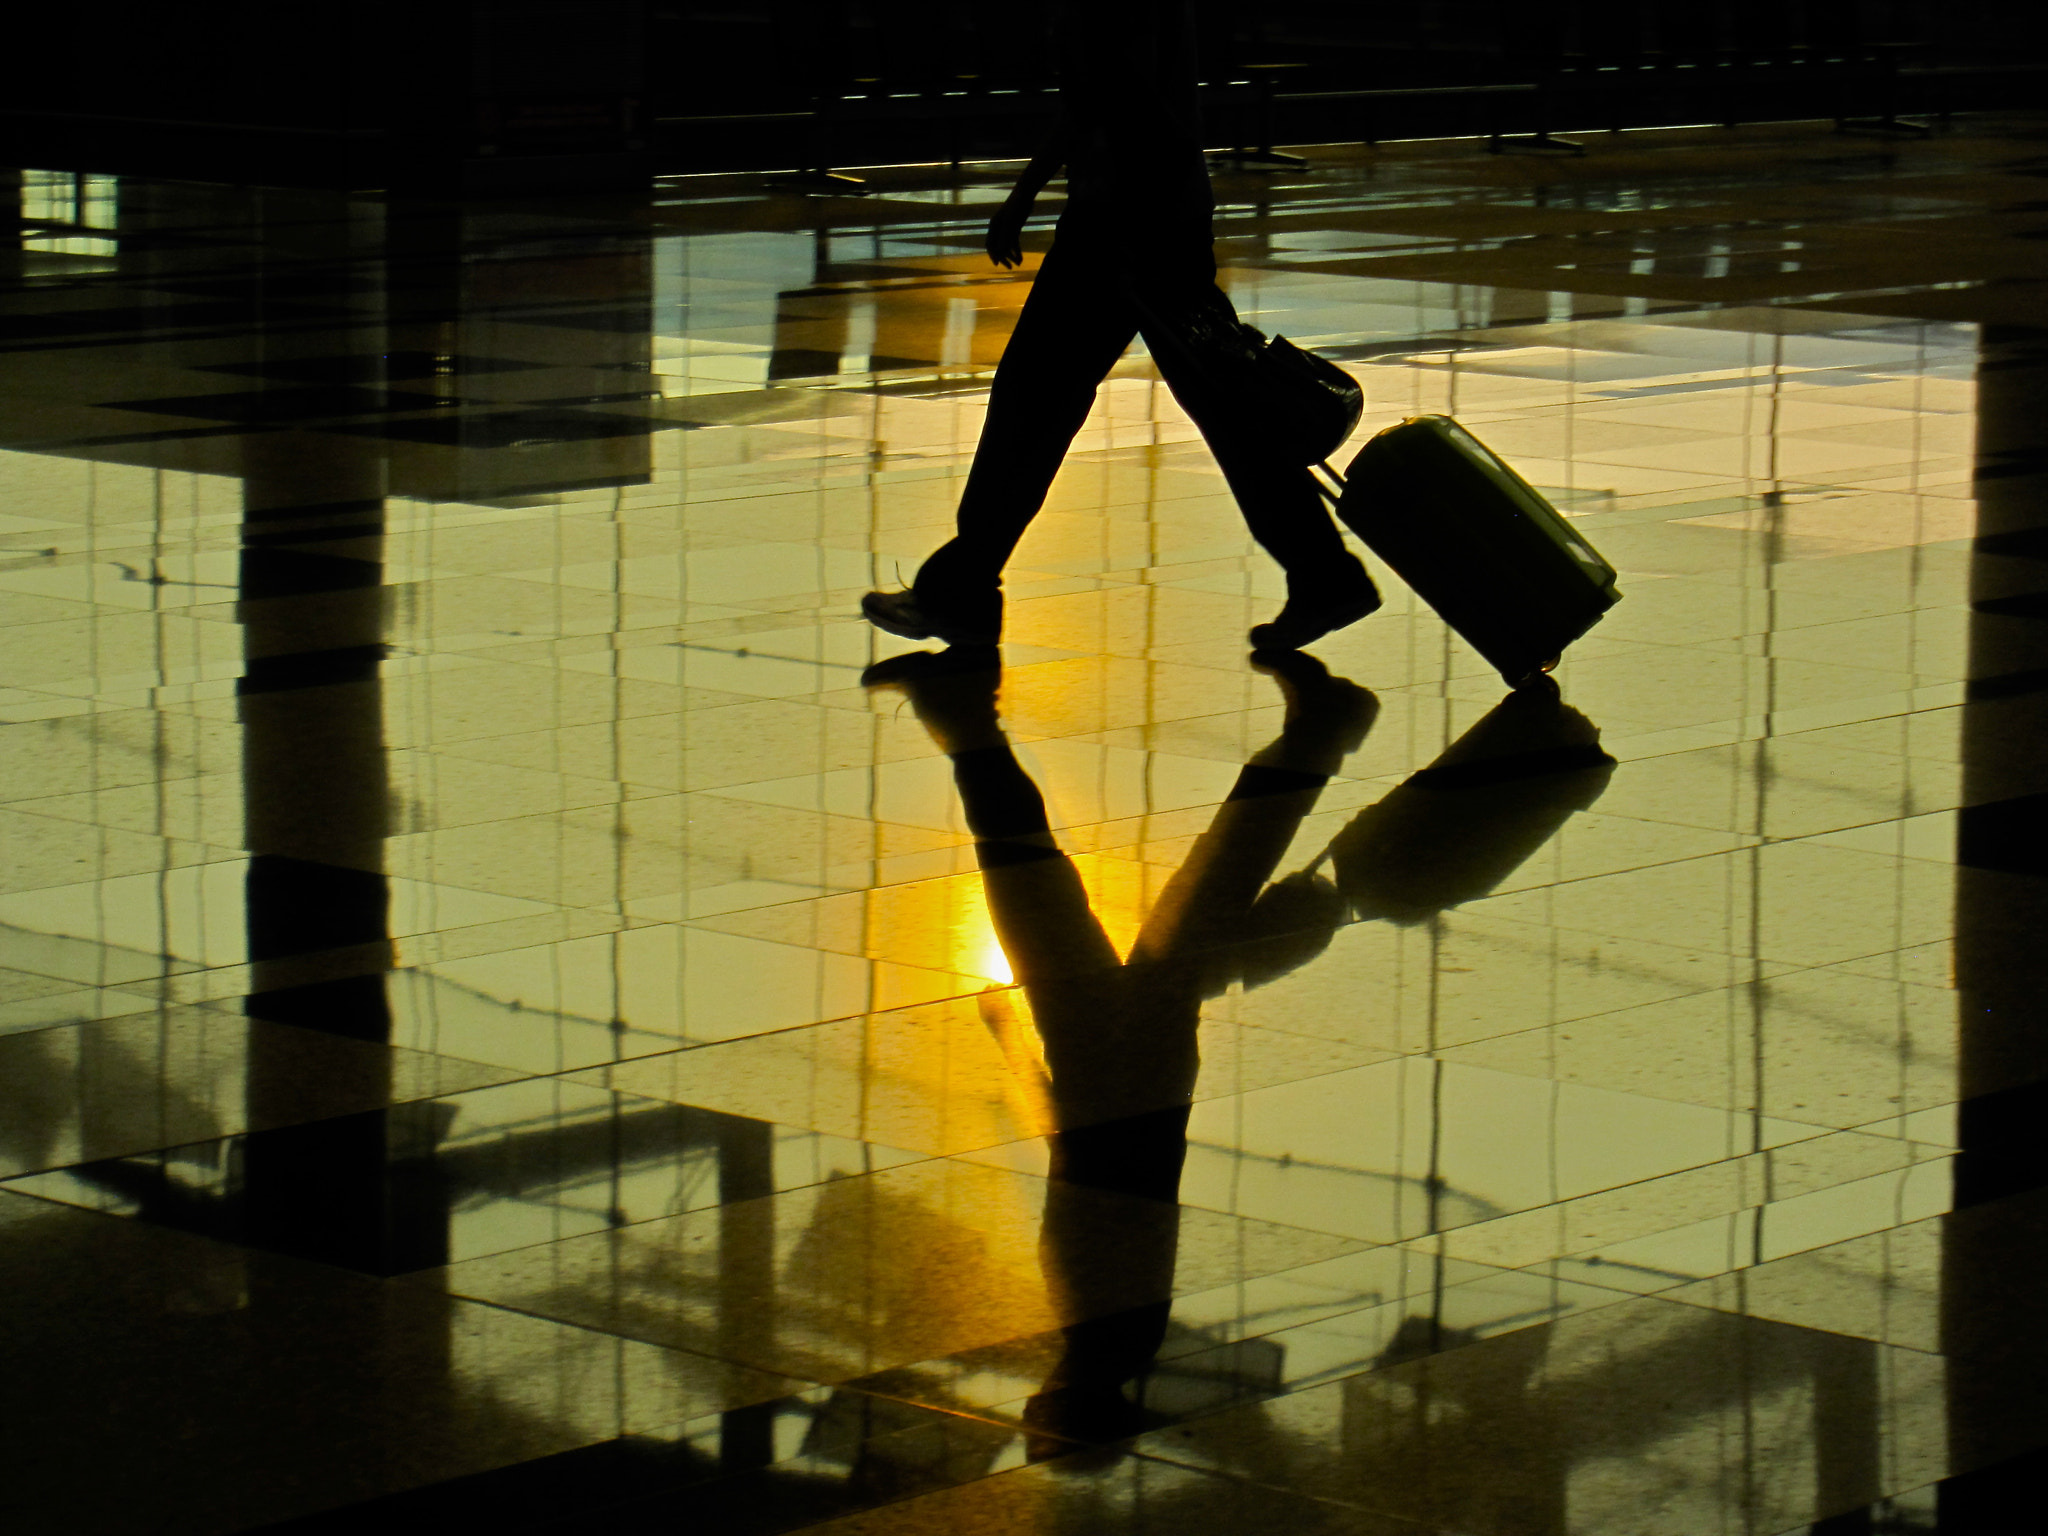 Photograph Changi Airport, Singapore by Rick Macomber on 500px